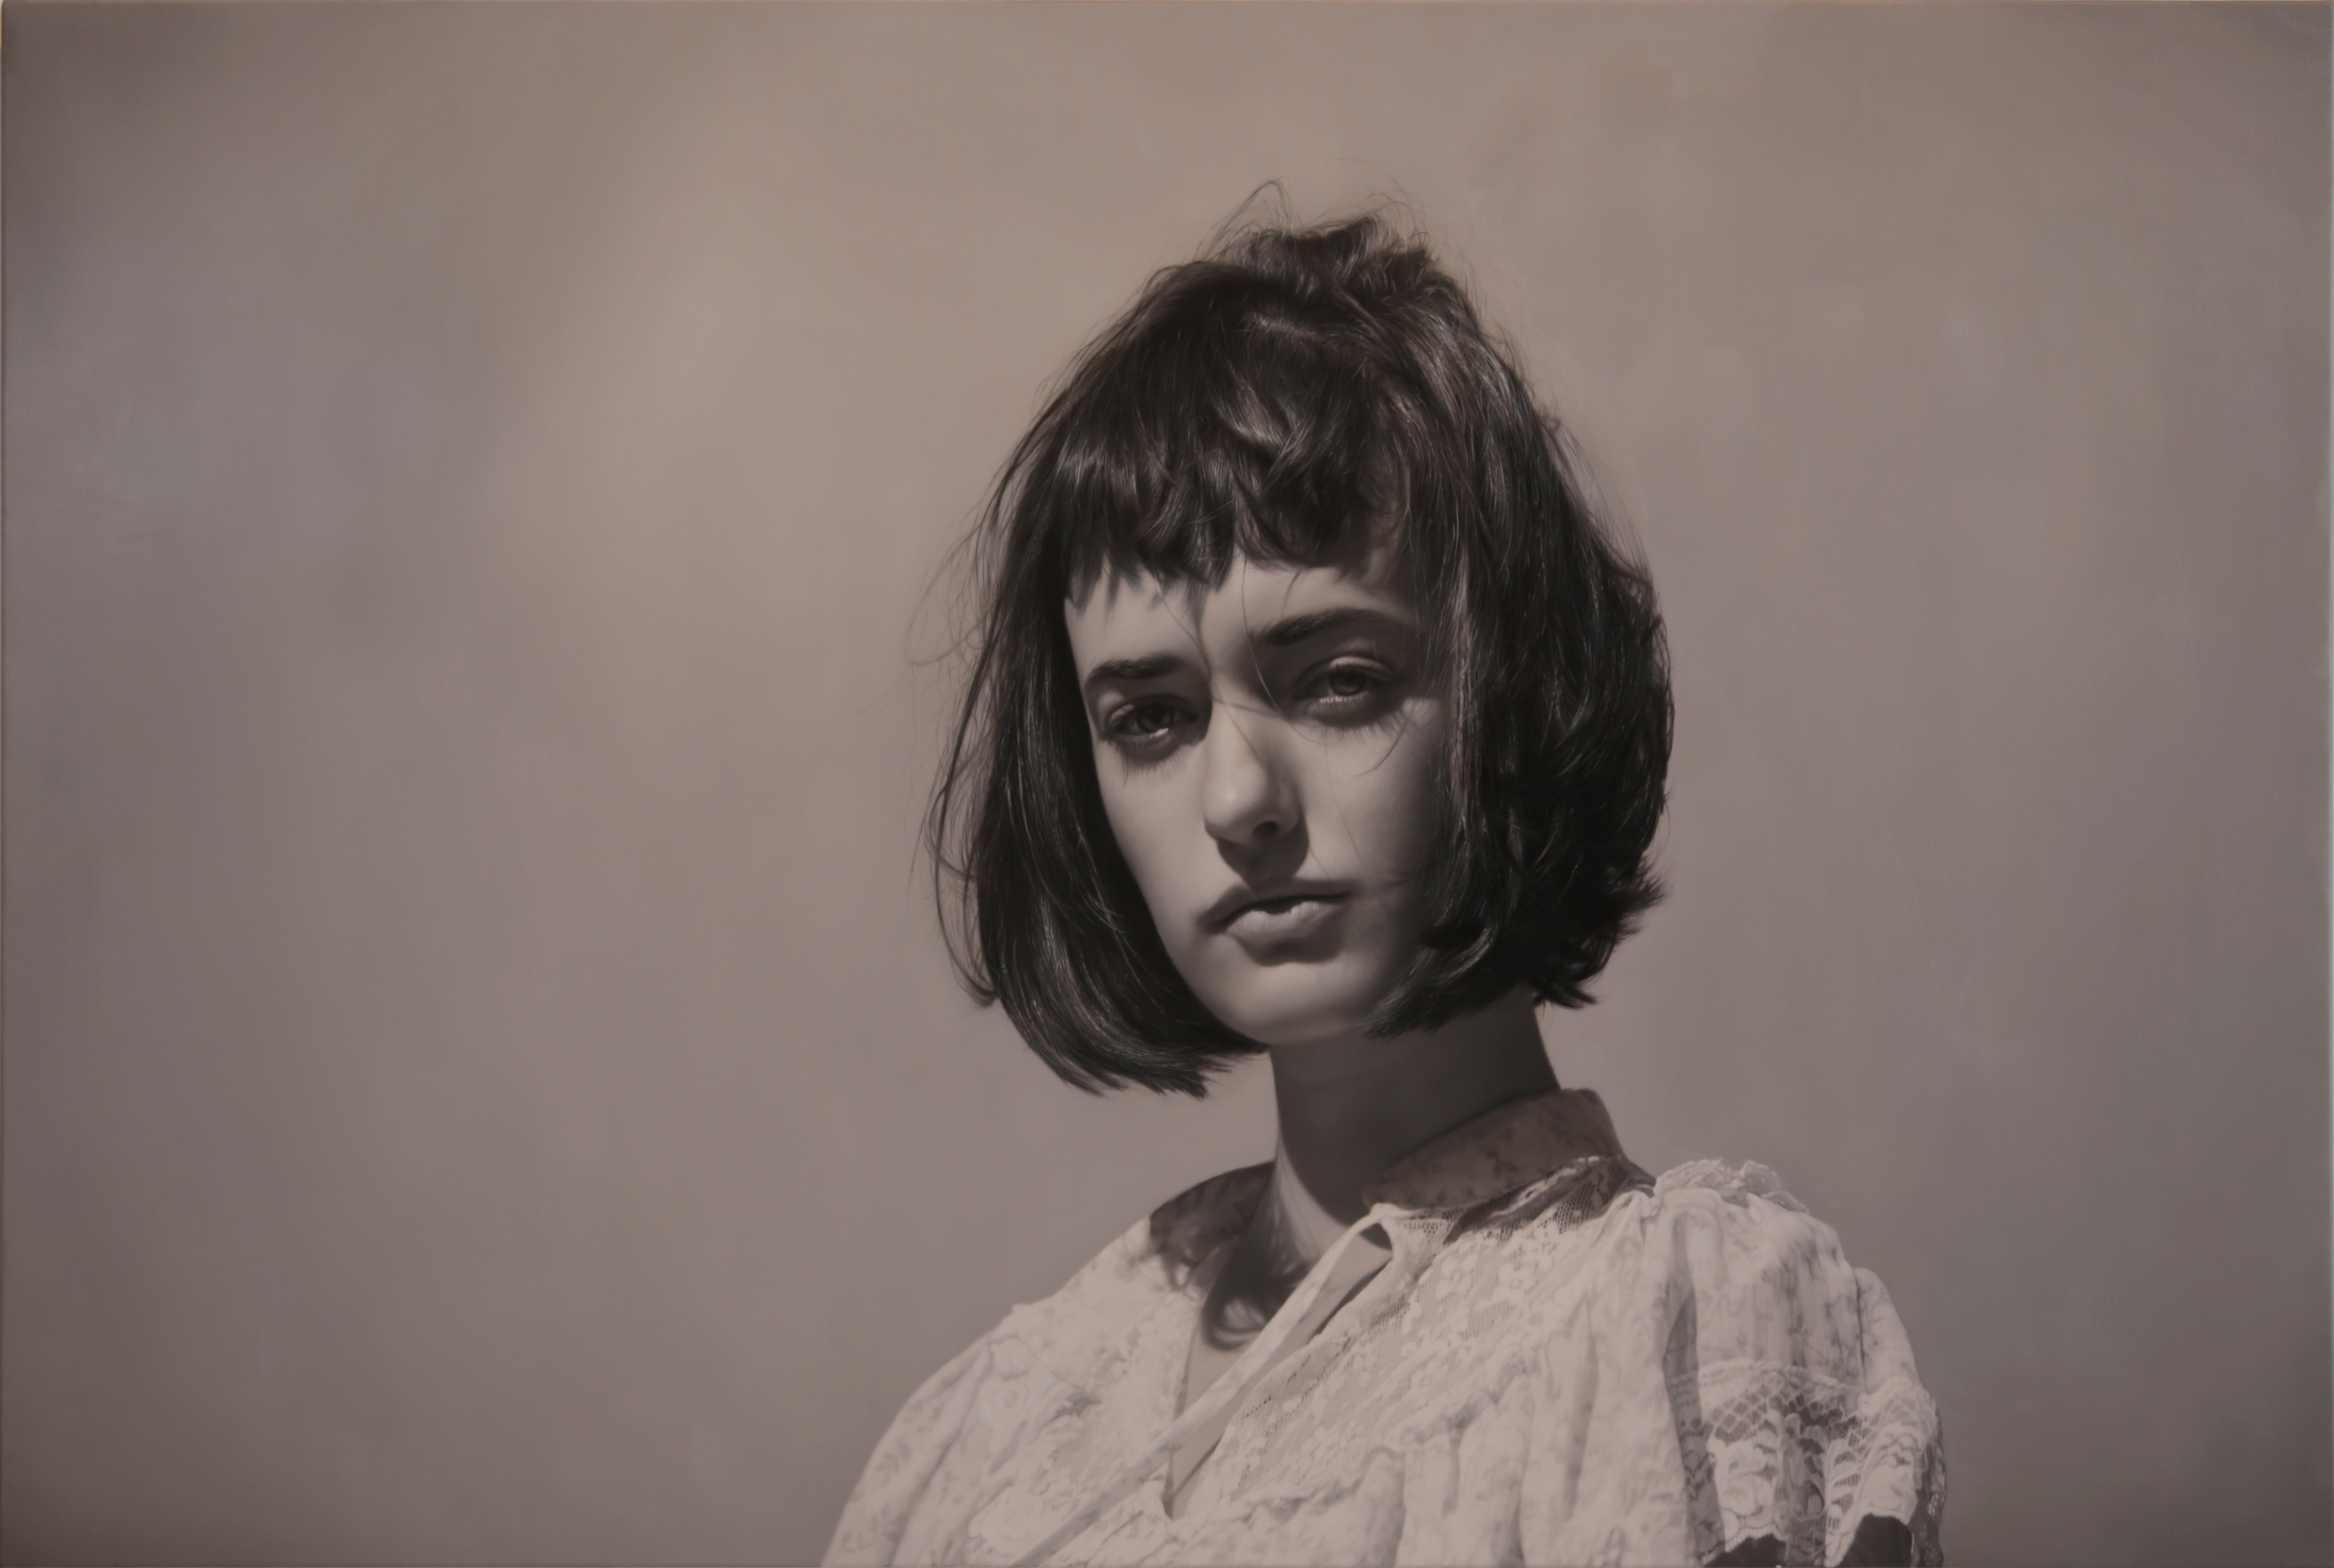 Yigal Ozeri, Untitled; Olya Monochrome